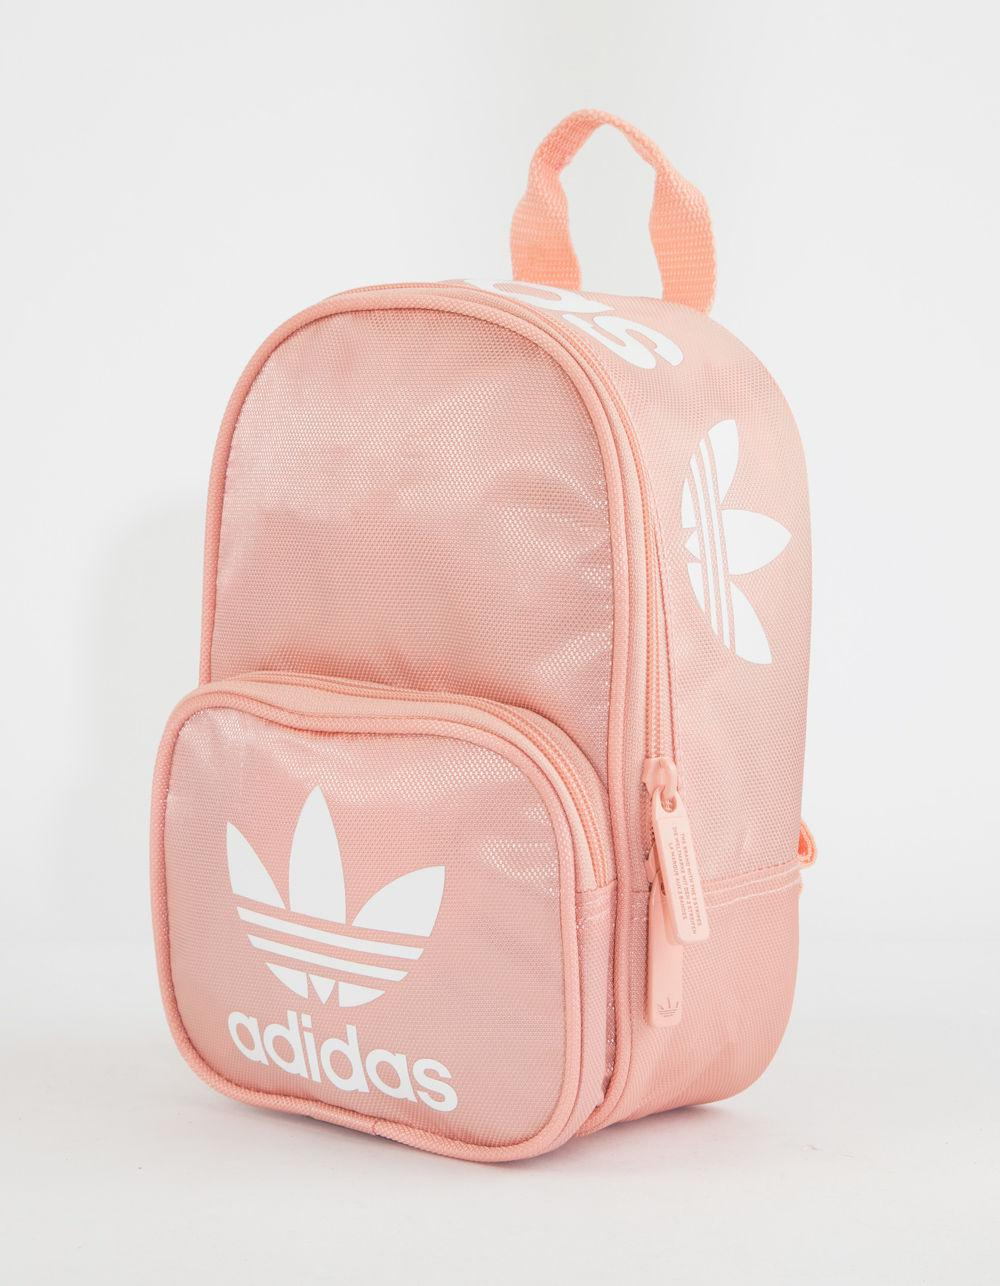 Lyst - adidas Originals Santiago Pink Mini Backpack in Pink 3210fe51493f0